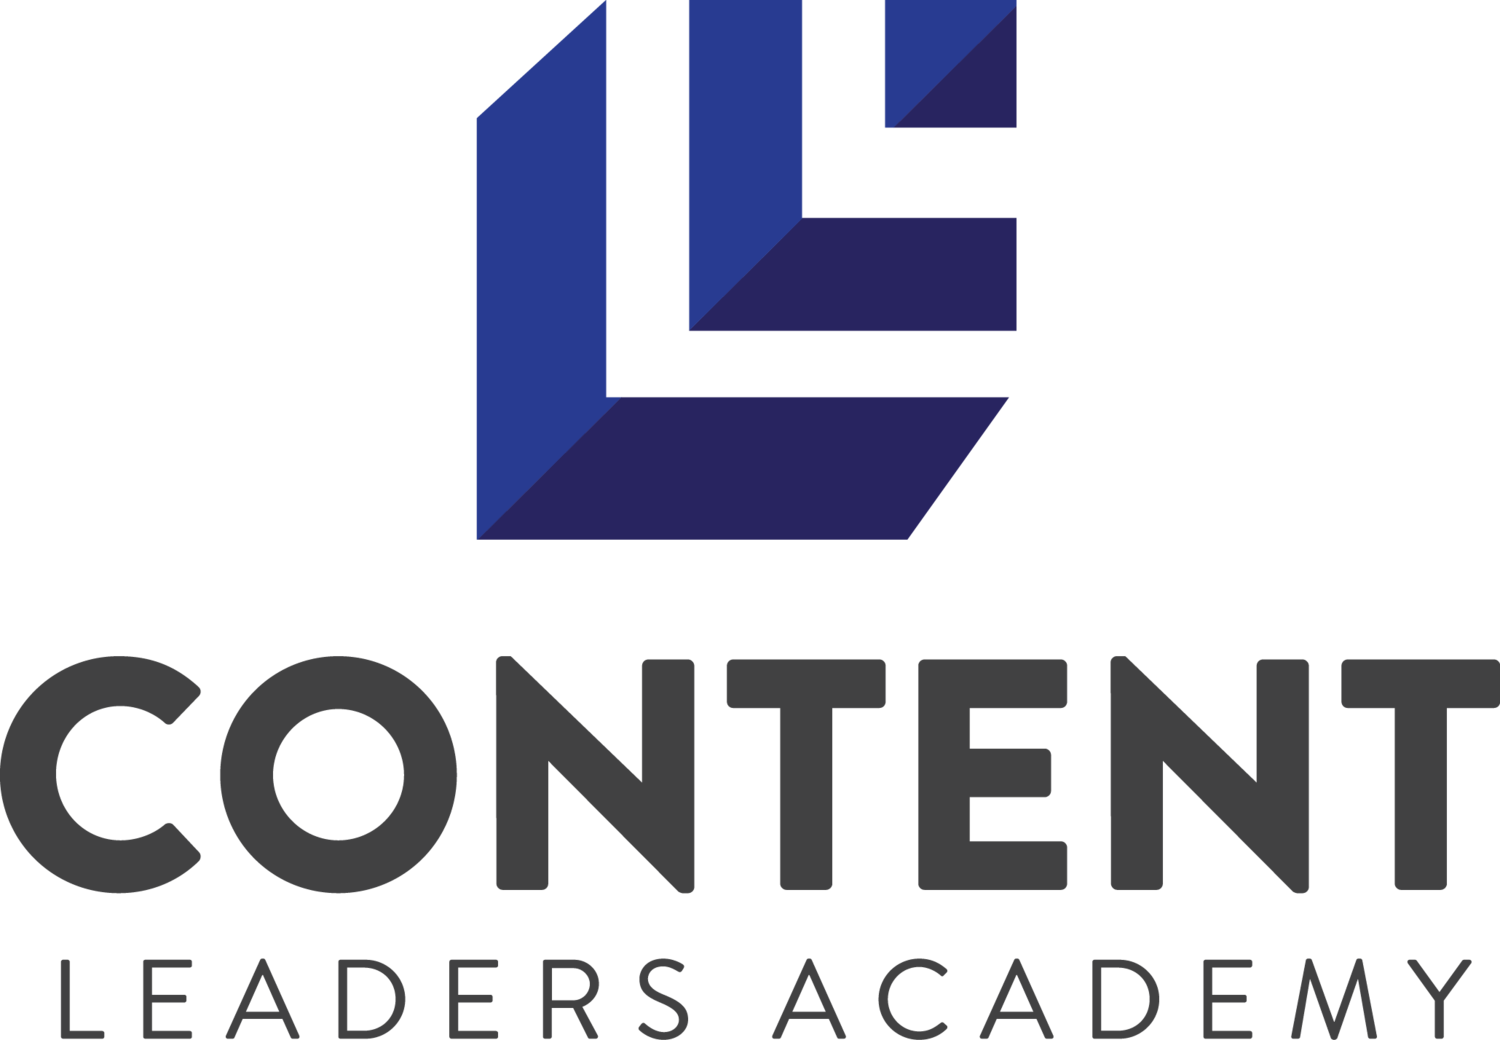 Content Leaders Academy